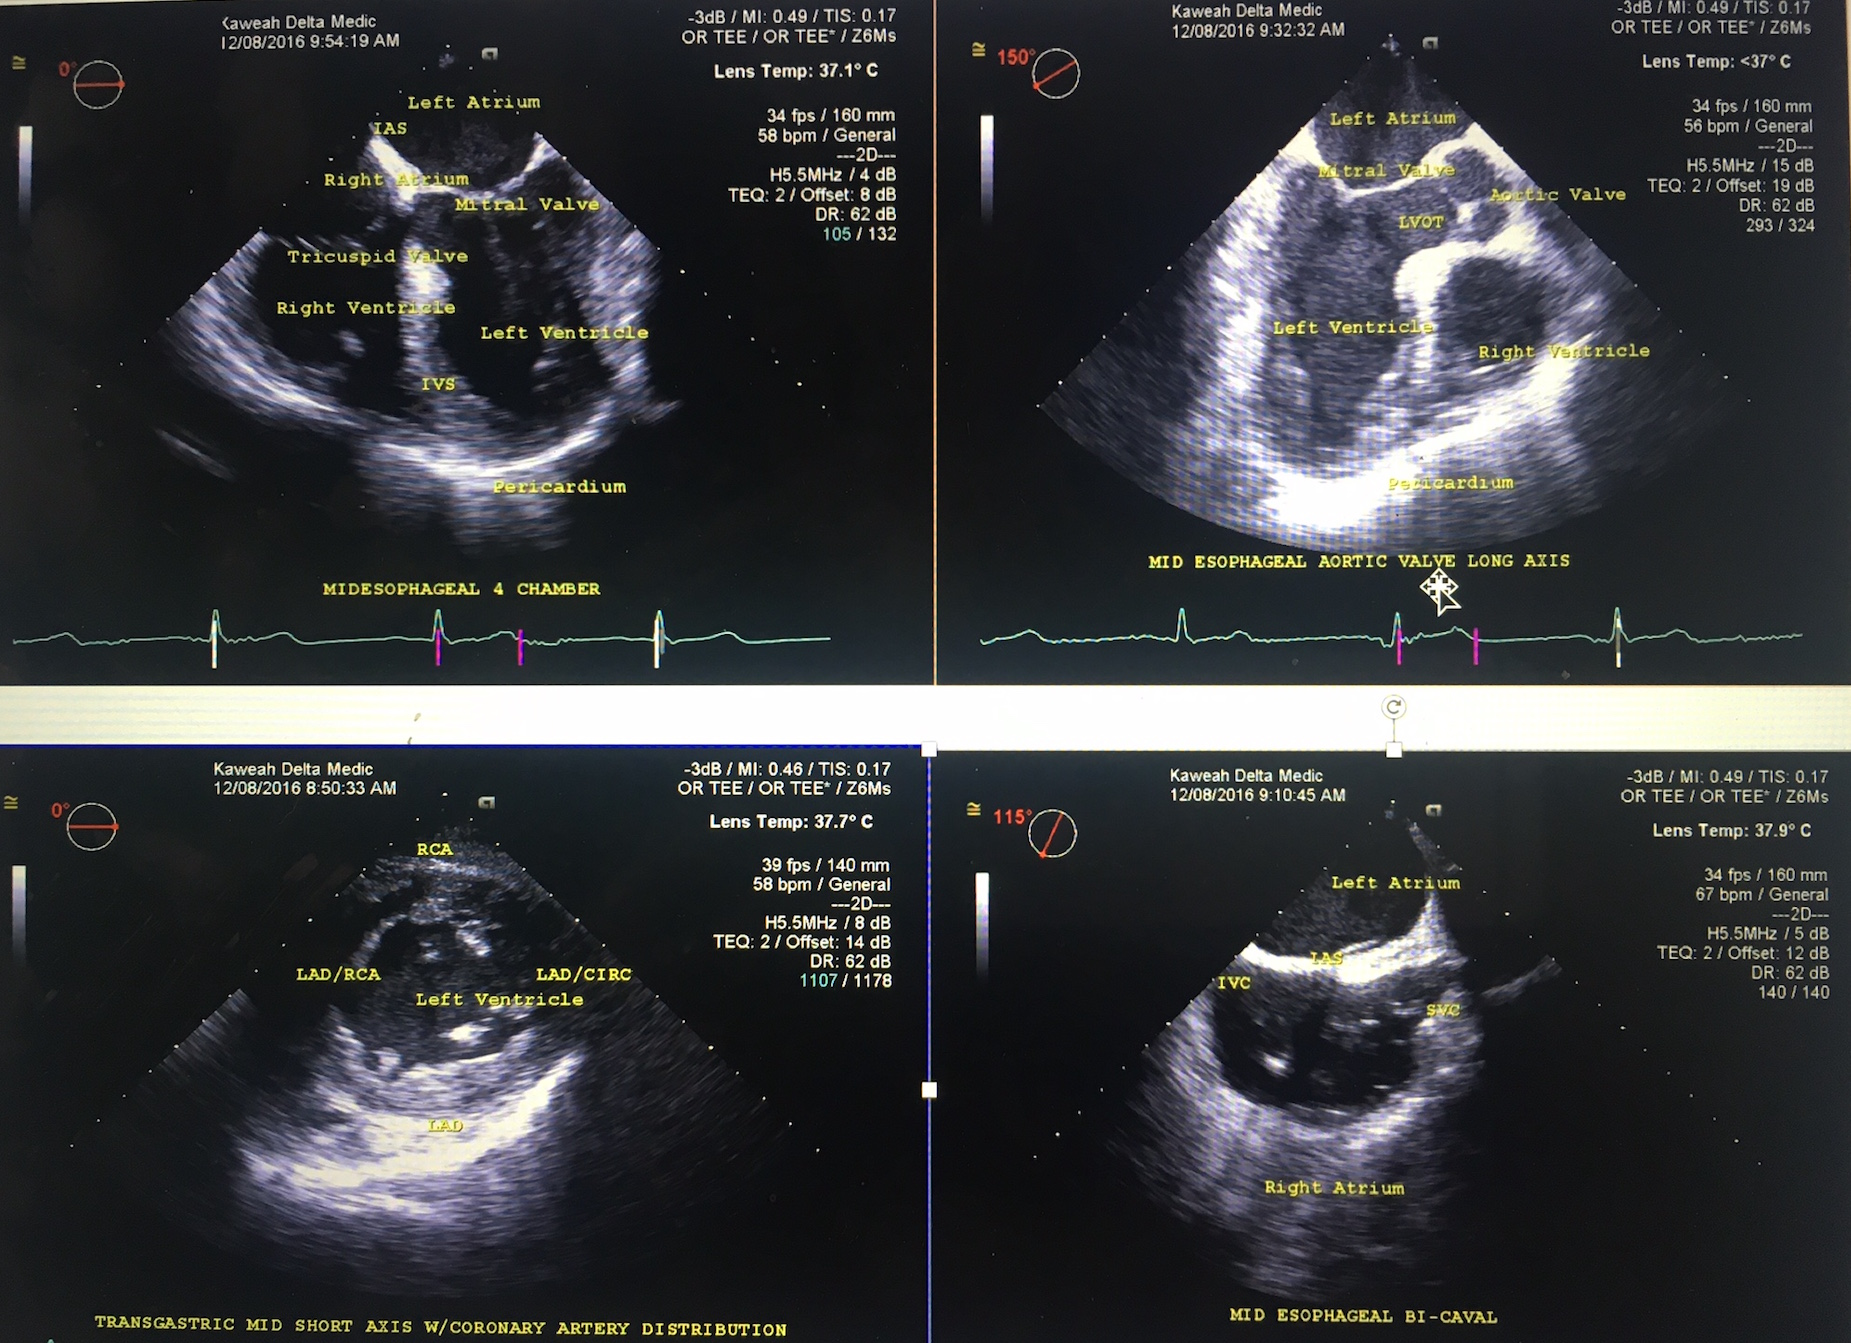 4 basic views to use in the patient who presents in cardiac arrest Image, Image 1; Midesophageal Four-Chamber view (MEFC), Image 2; Transgastric mid-papillary short axis view (TGMPSA), Image 3; Mid Esophageal Long Axis view (MELA) showing the LV in and outflow tracts, Image 4,4; Midesophageal Bicaval view (MEBC)